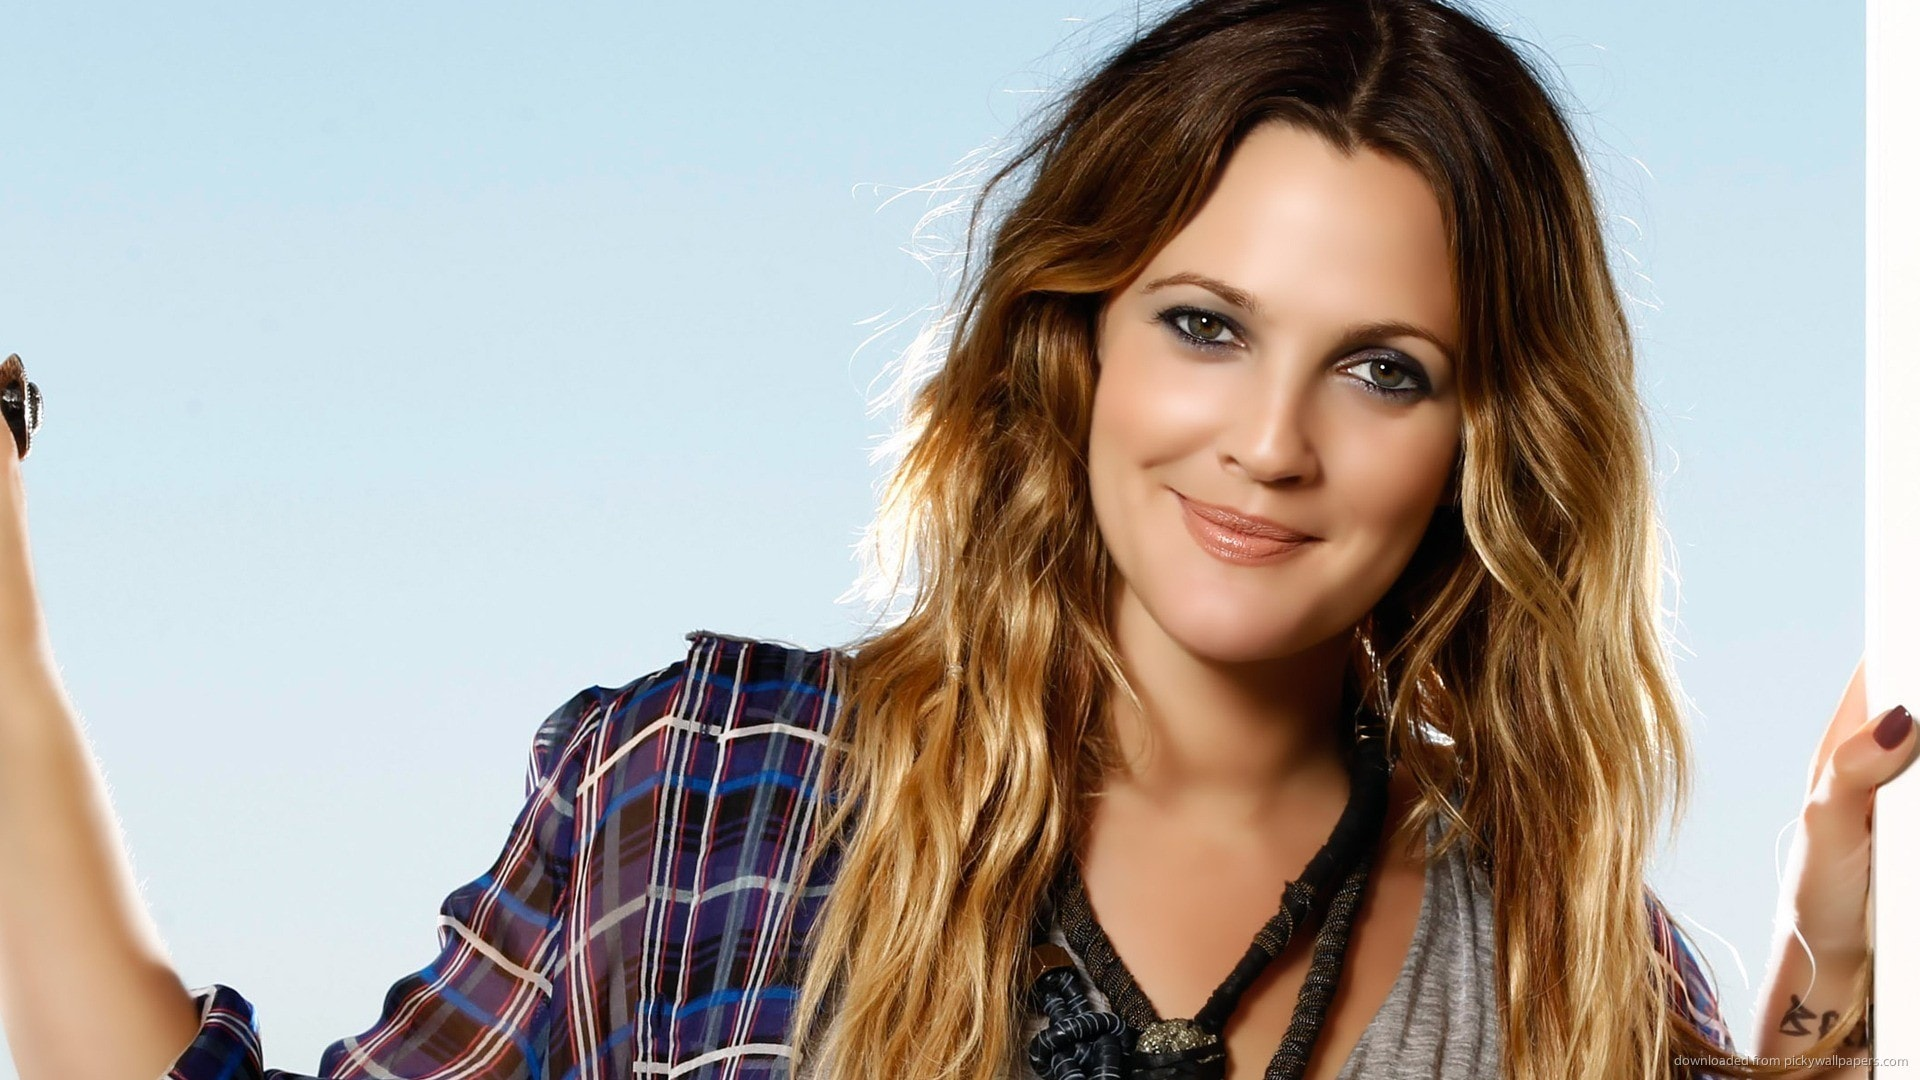 Drew Barrymore Desktop wallpapers